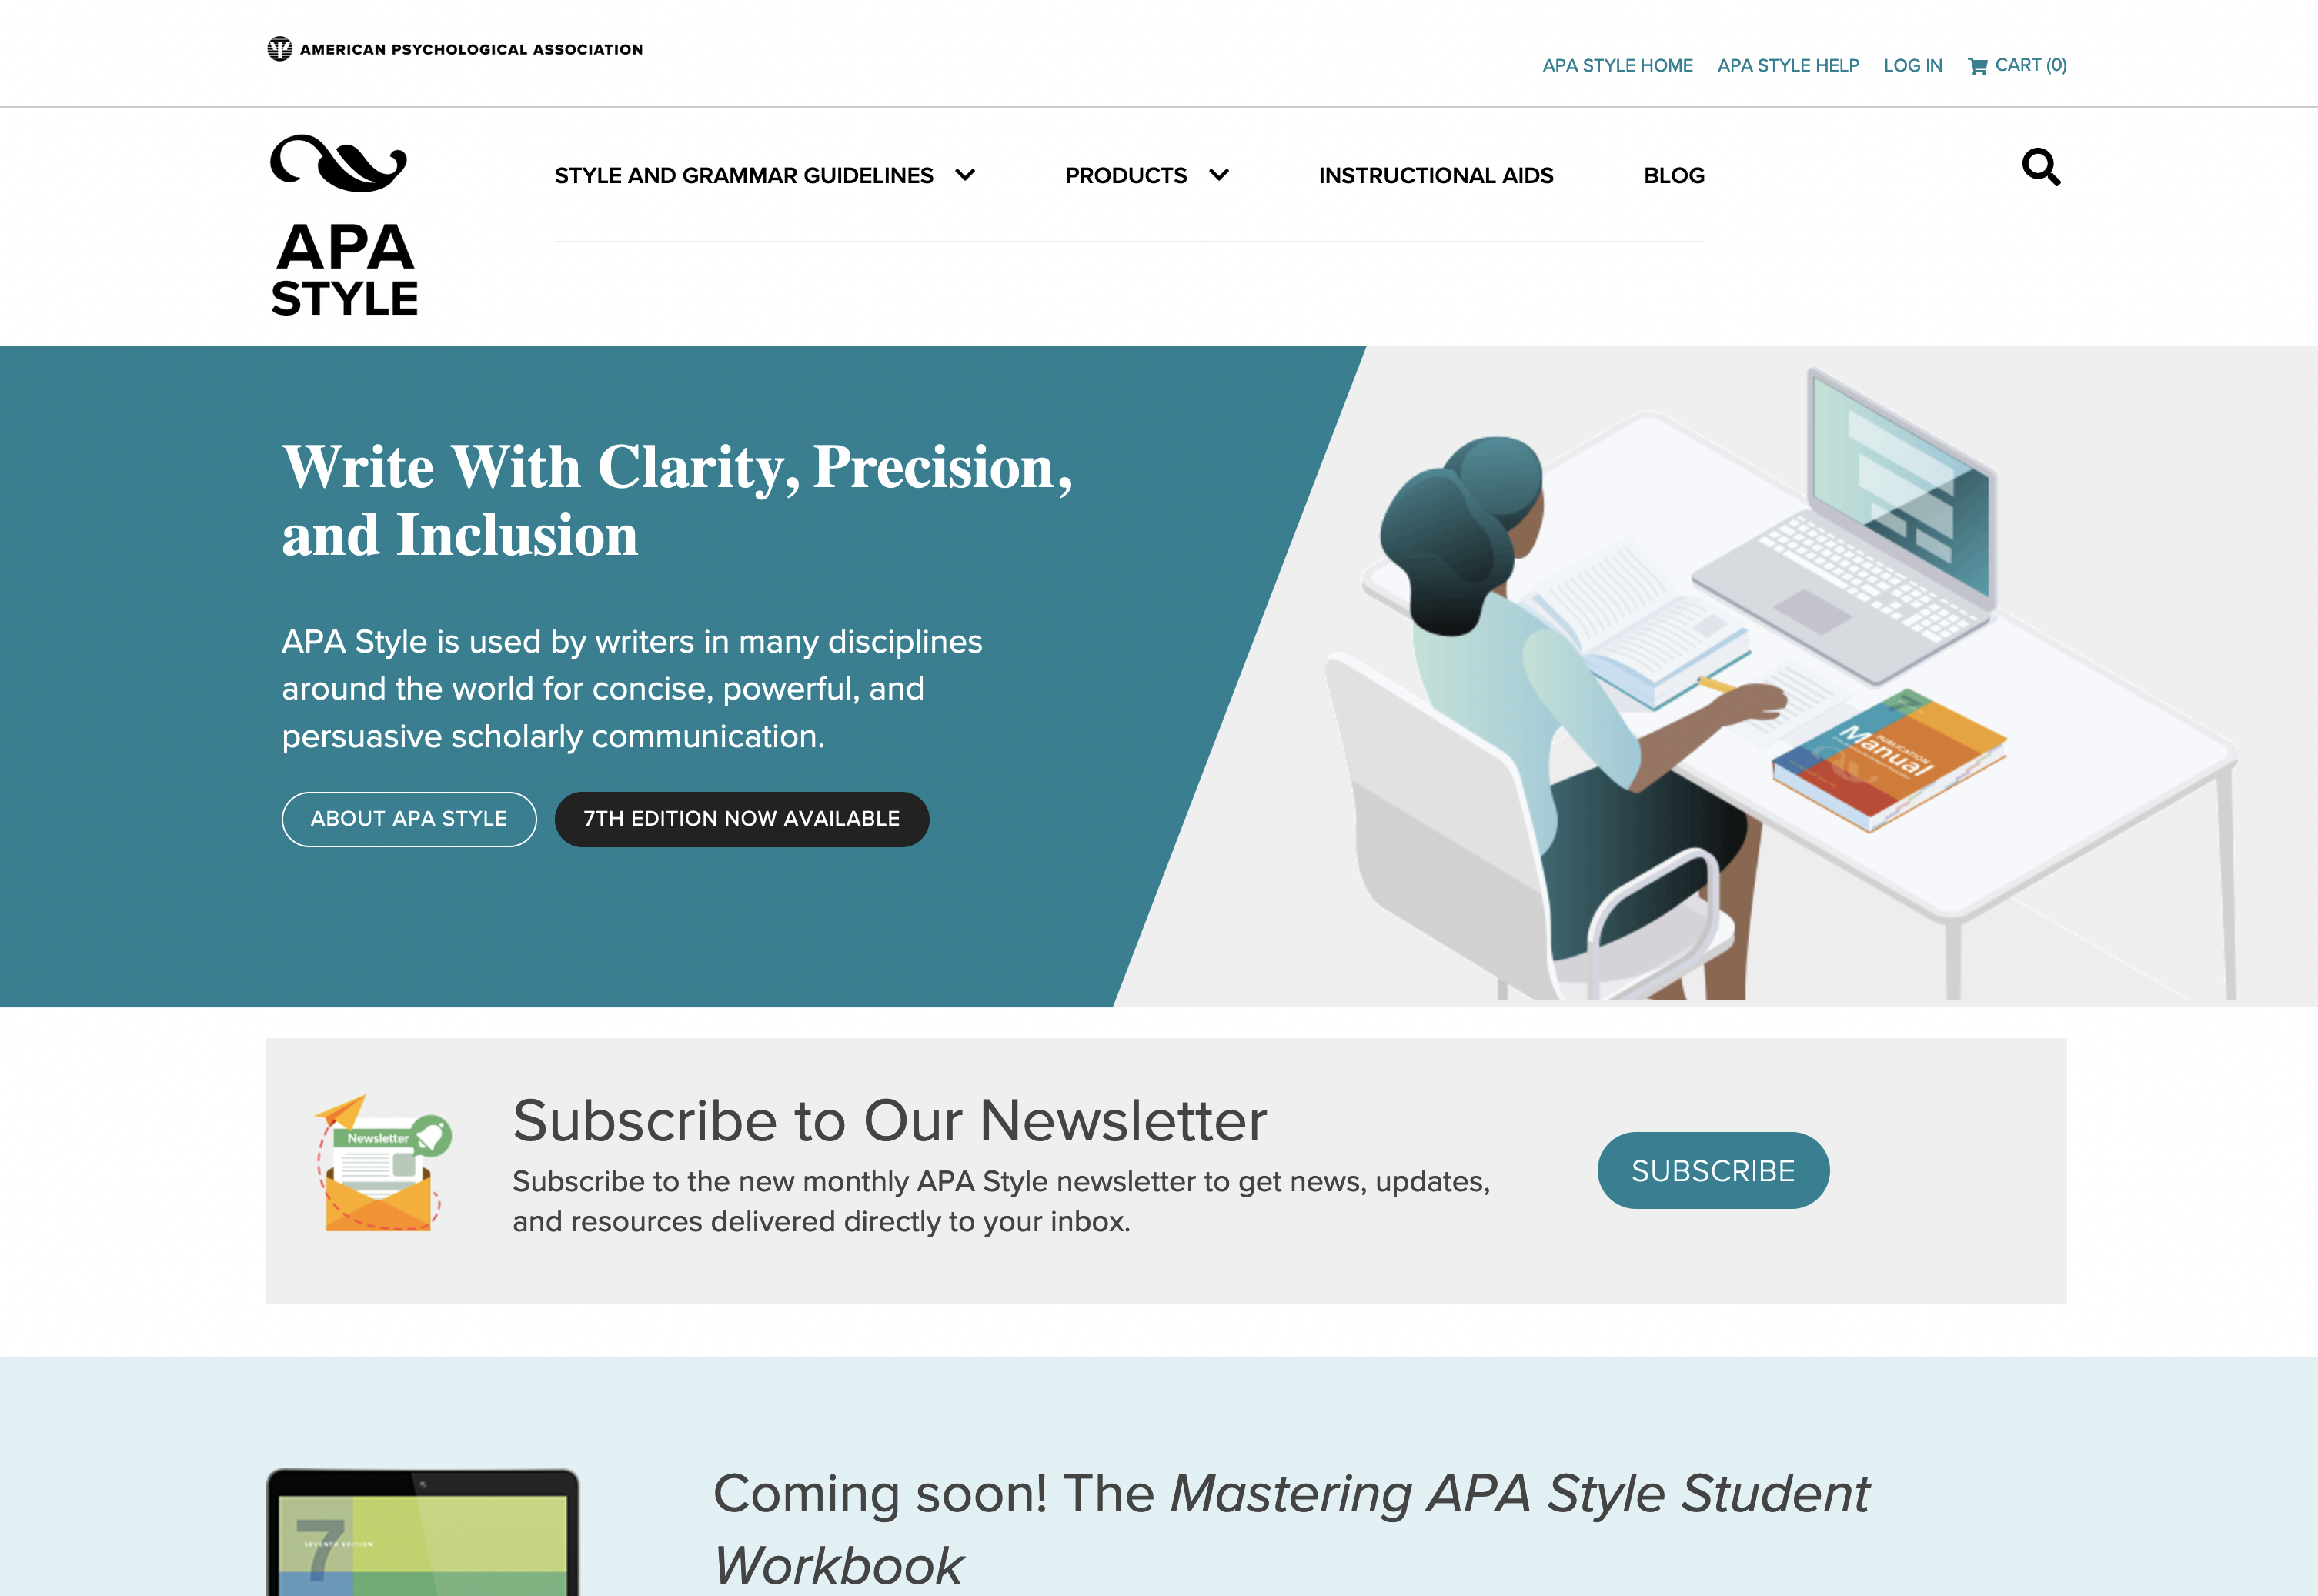 Screen shot of APA Style homepage with links to resources including style guides and information about APA style.